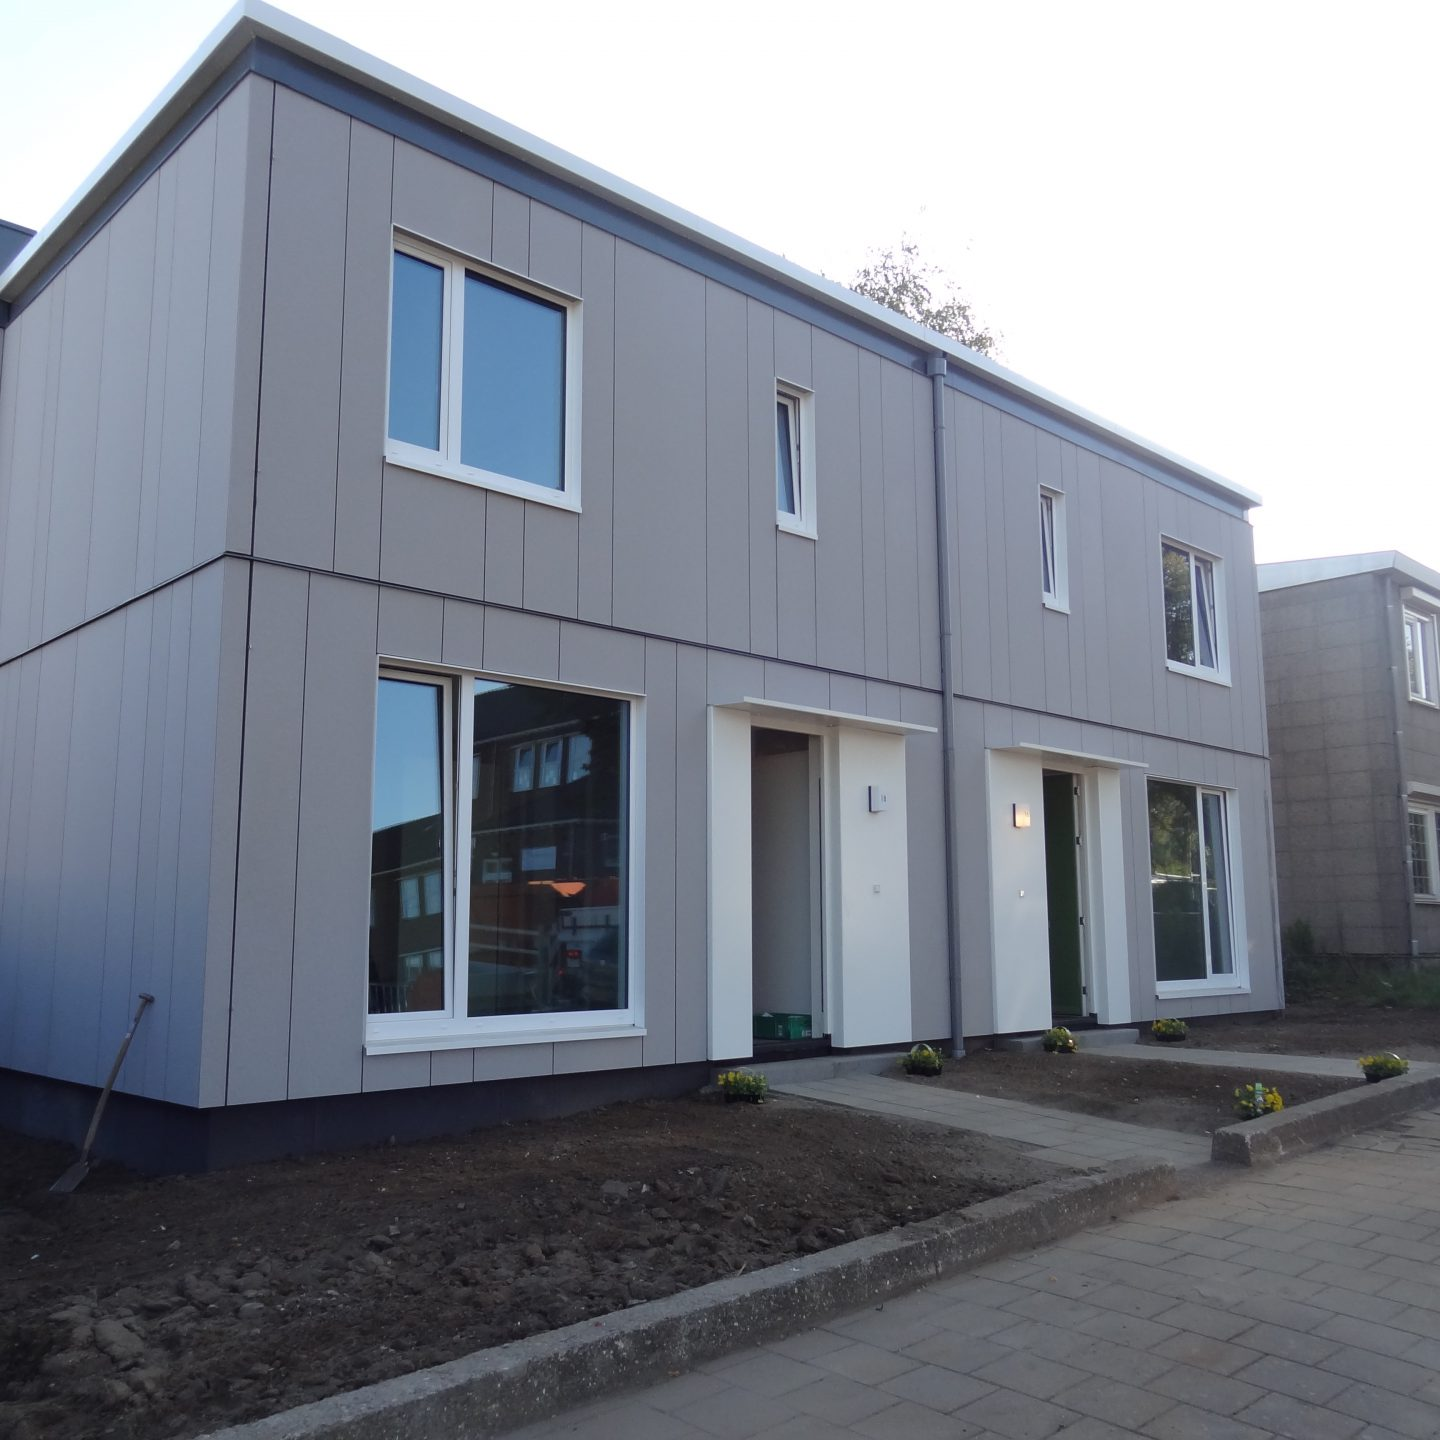 OPLEVERING 18-09-2020